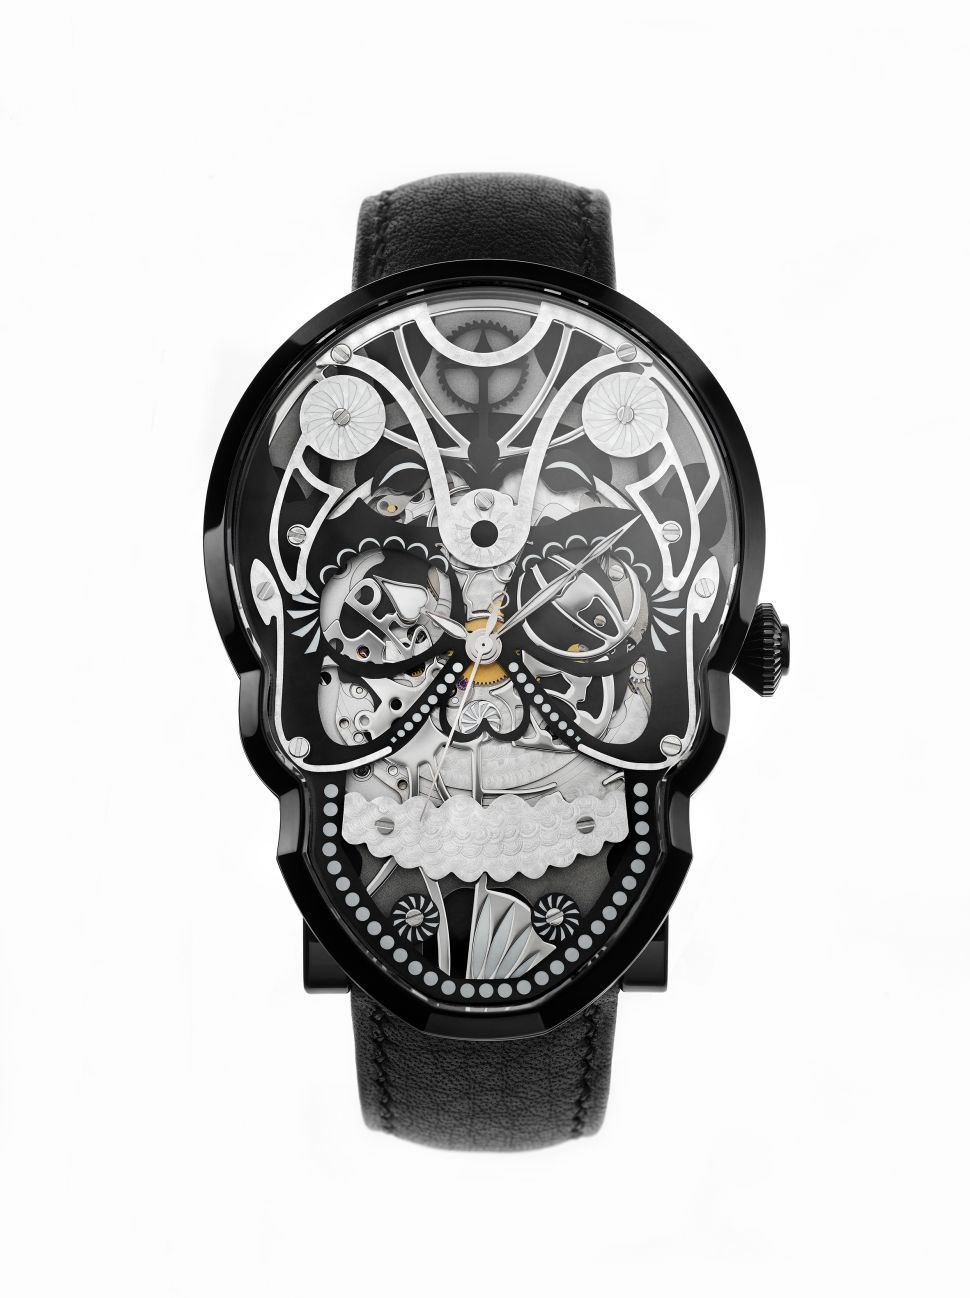 Skulls Are Still a Theme for Watches This Fall